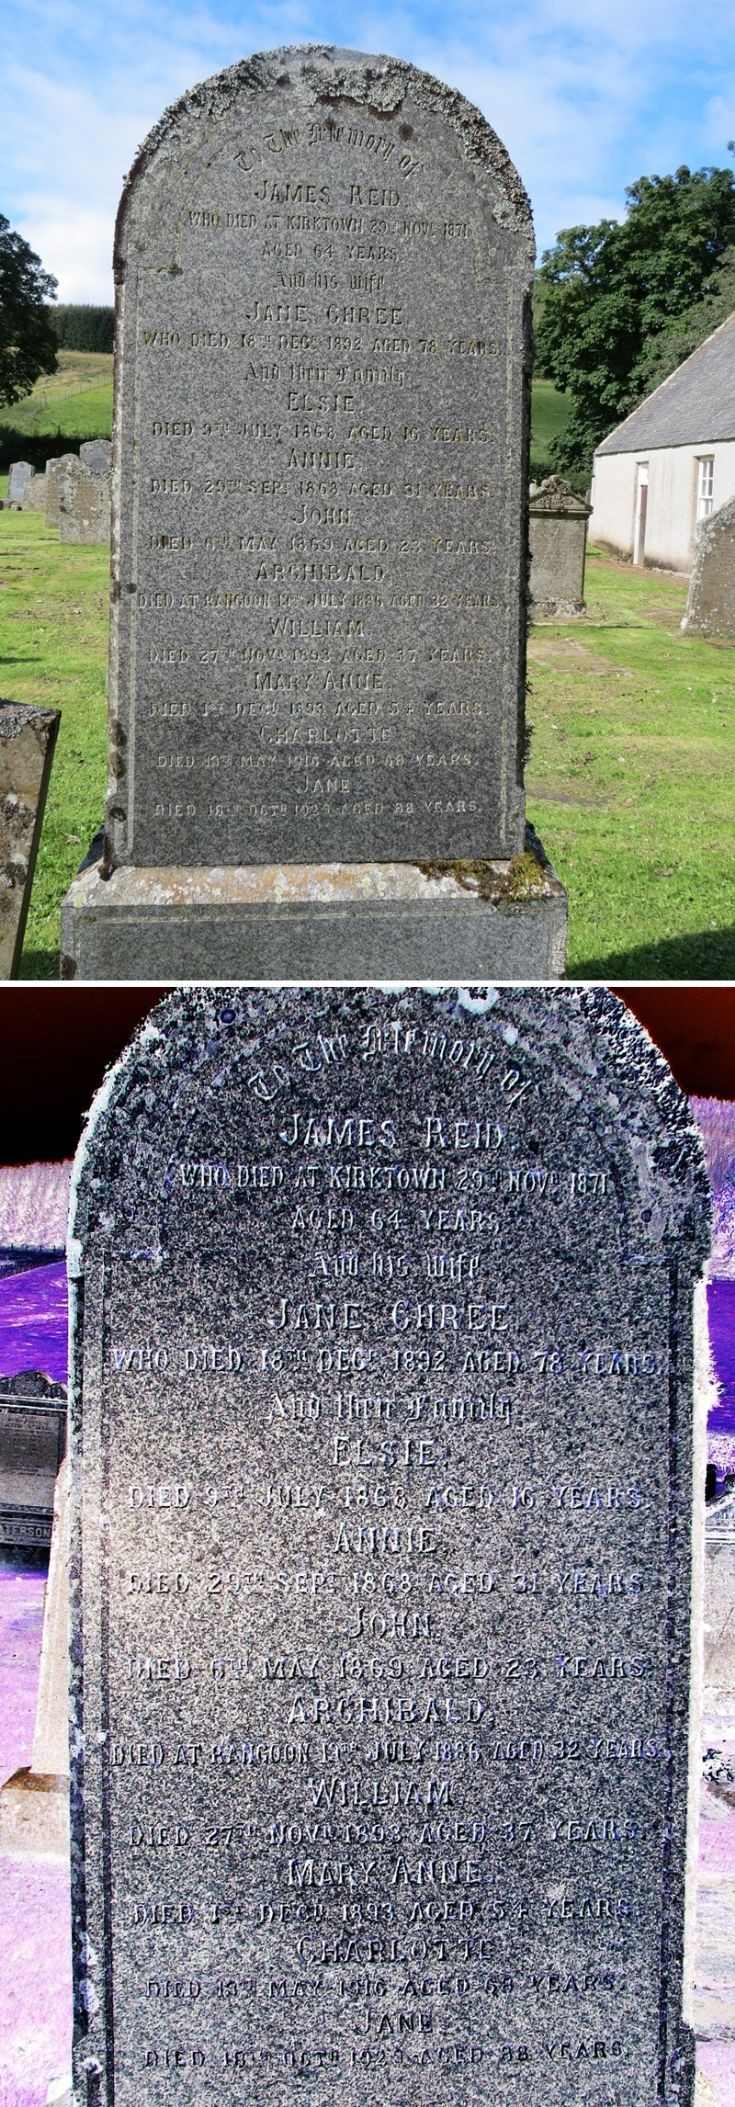 51 Grave No 58 James Reid